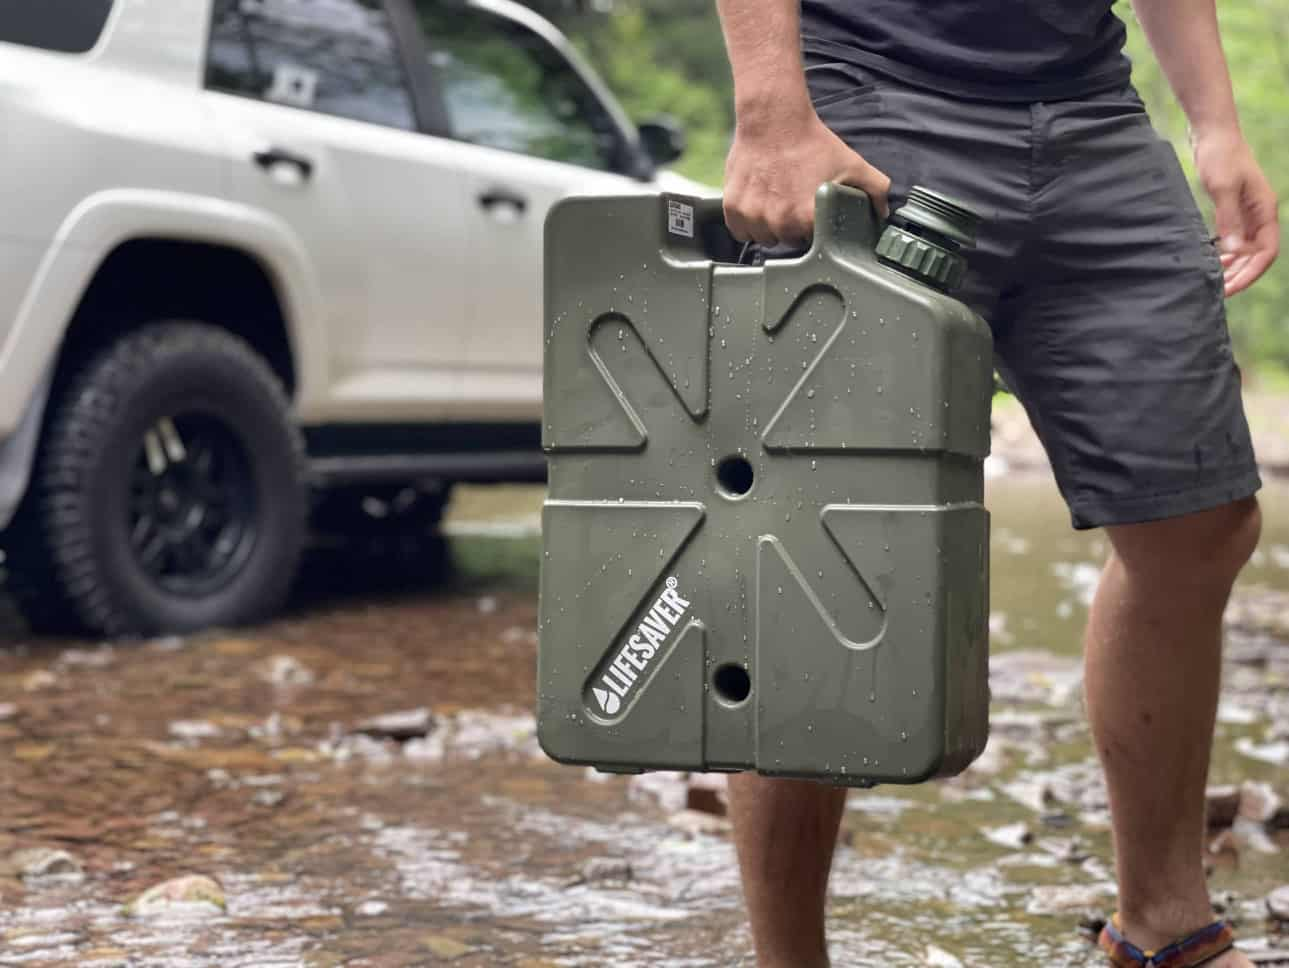 LifeSaver Jerrycan and Portable Water Filter Product Overview & Initial Review